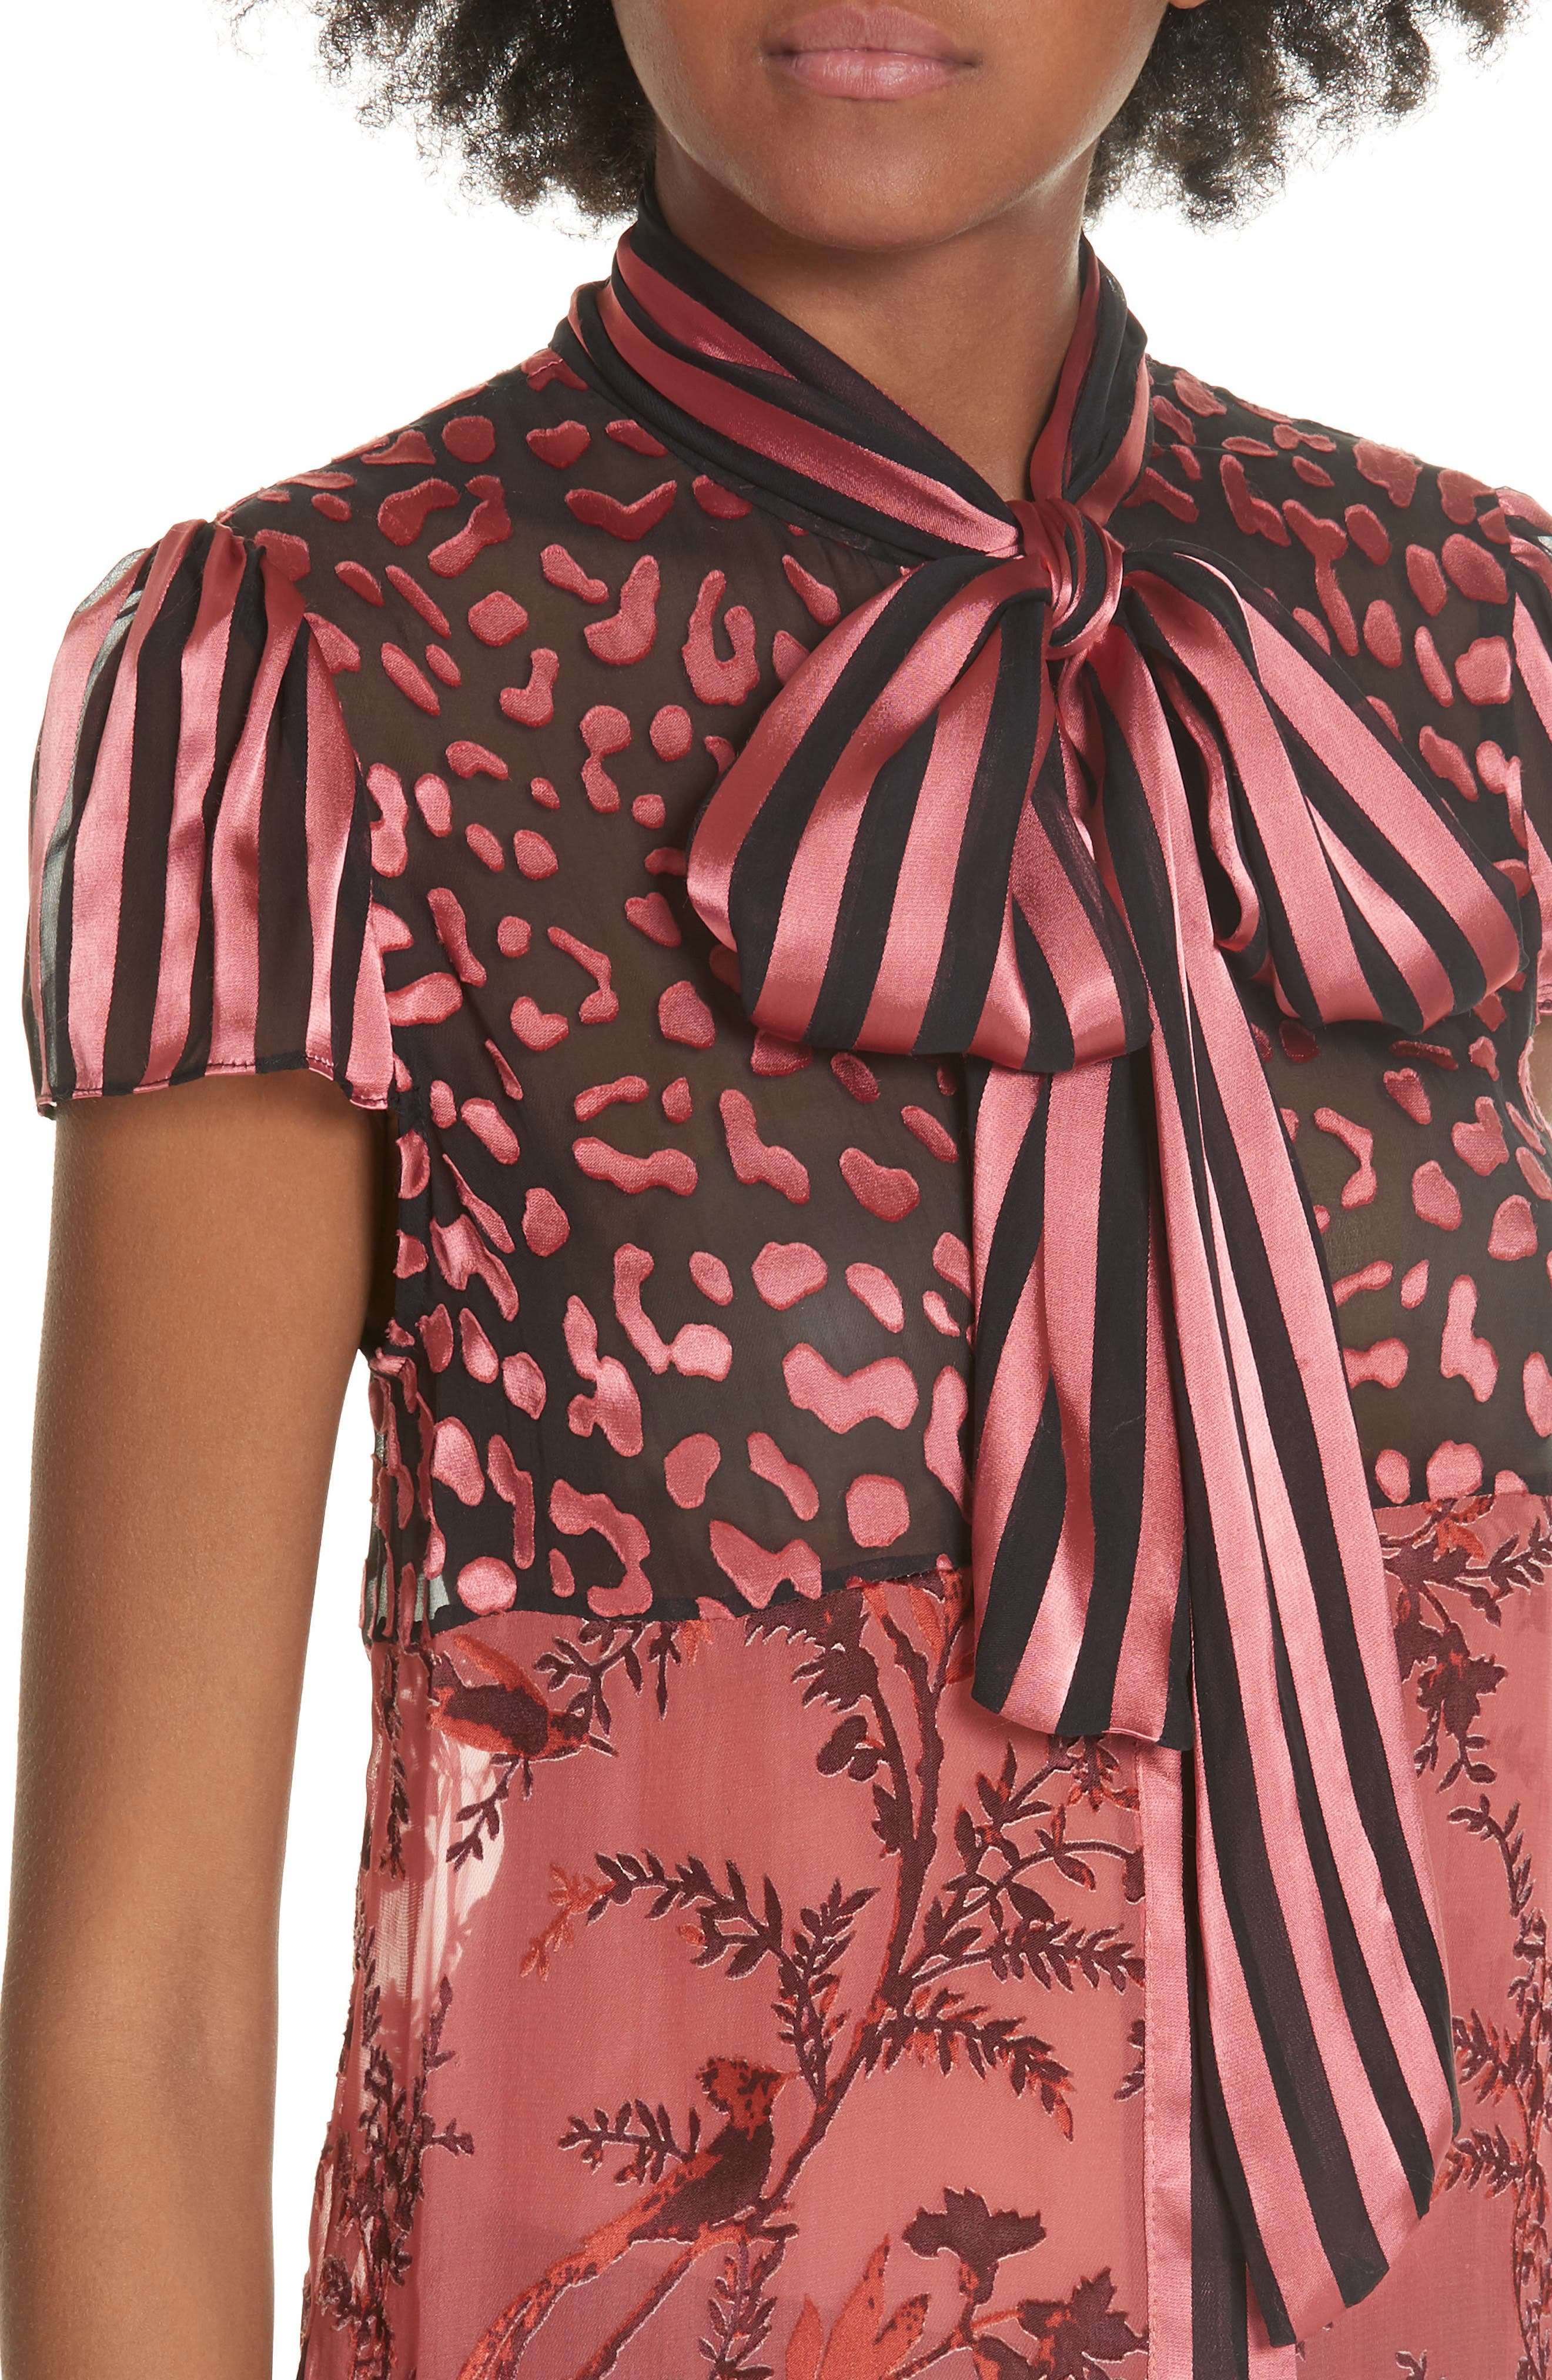 Jeannie Bow Neck Blouse,                             Alternate thumbnail 4, color,                             TWO TONE BIRD/ ROSE